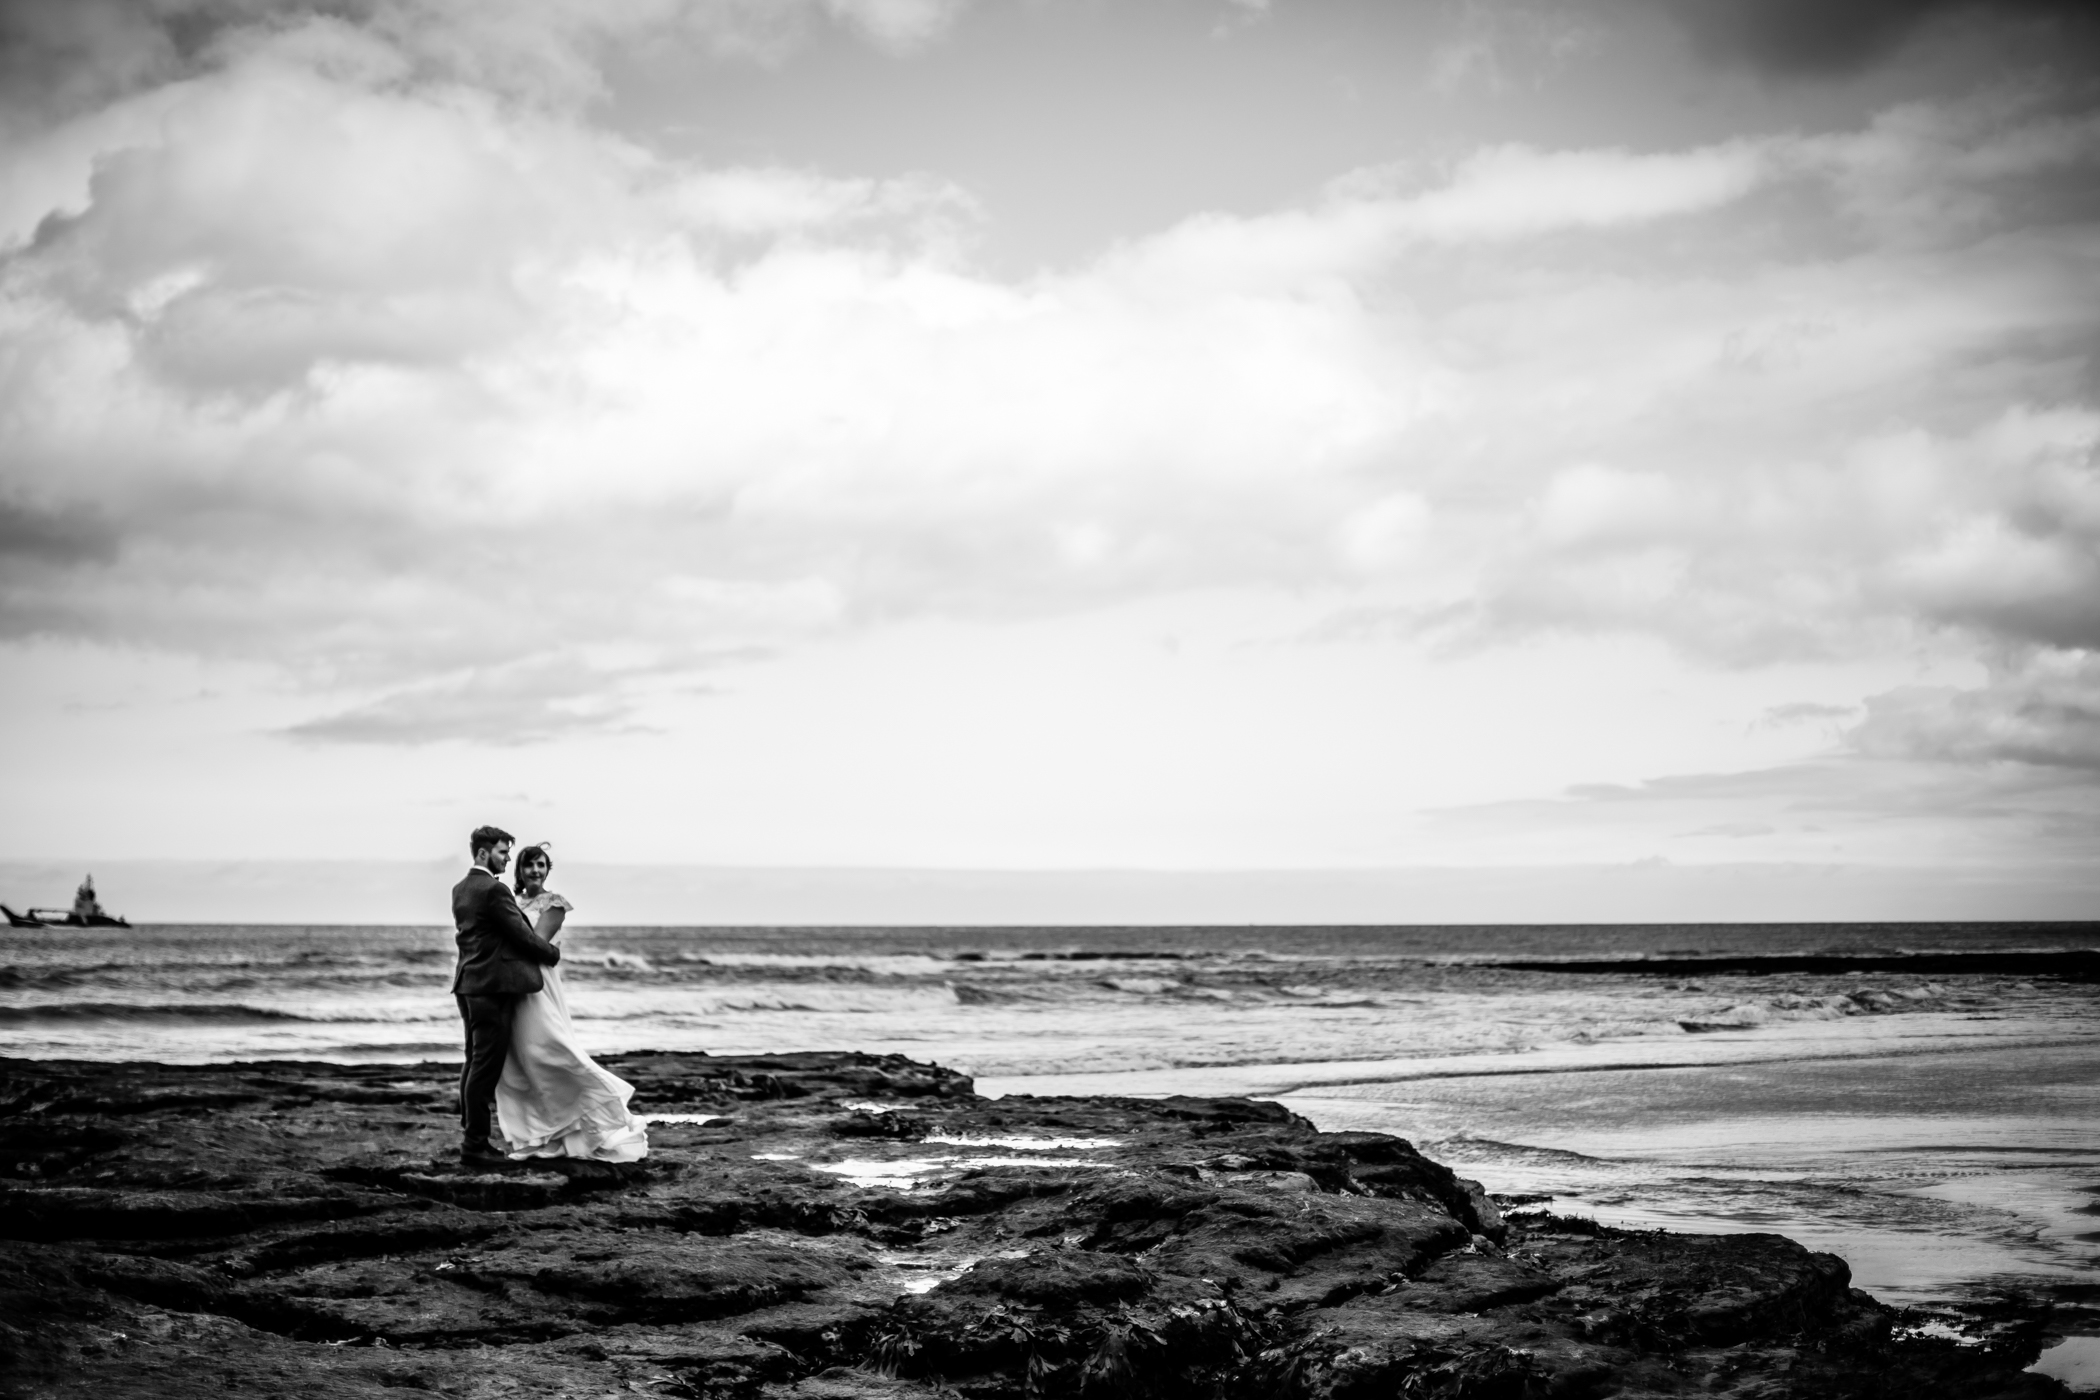 sansom photography beach wedding photography charlotte & mike-28